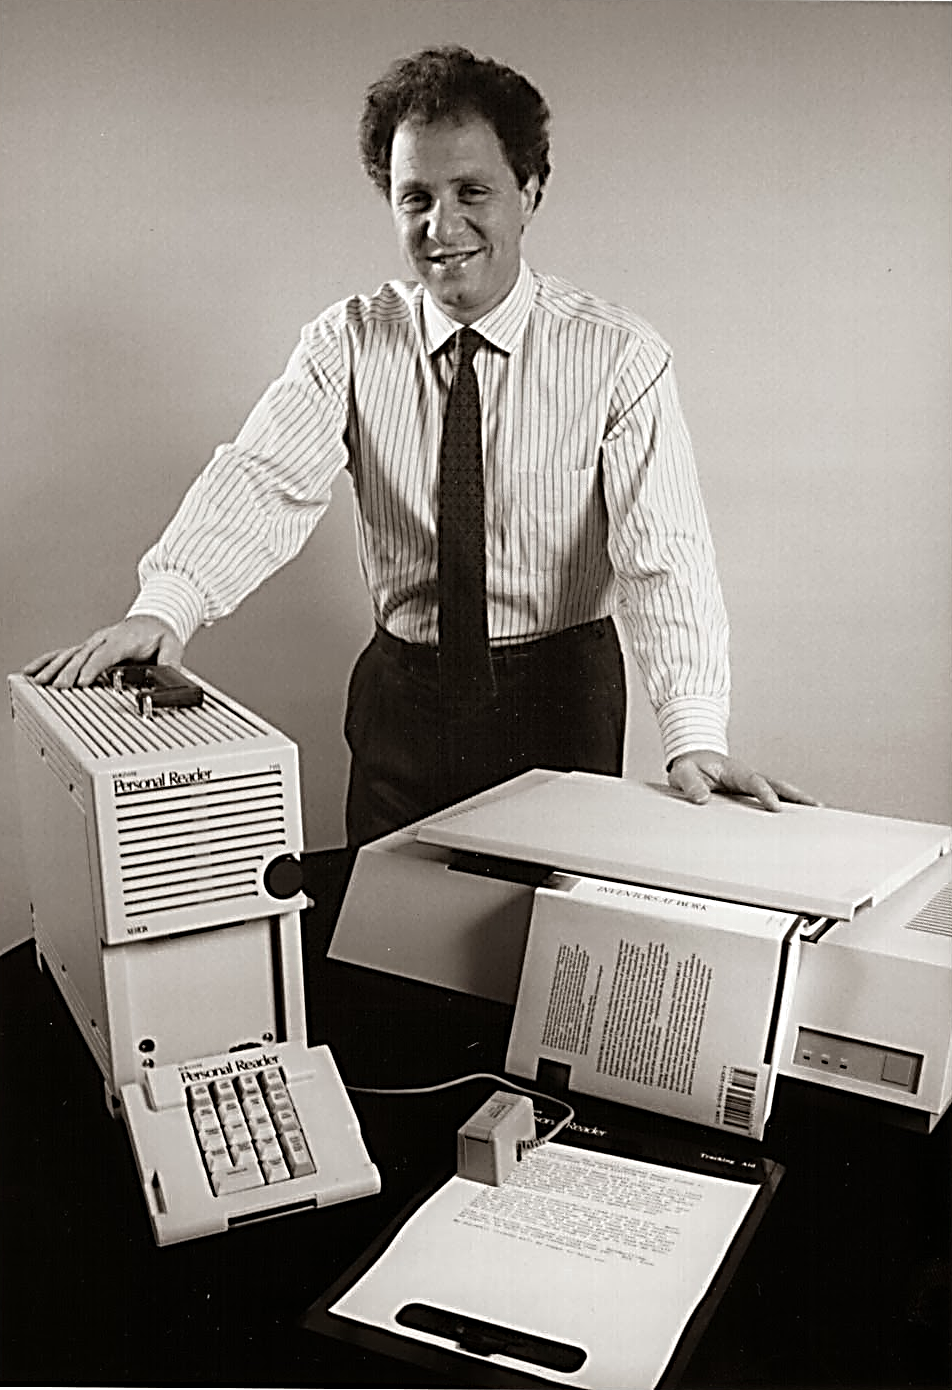 image of Ray Kurzweil with reading machine from 1970s